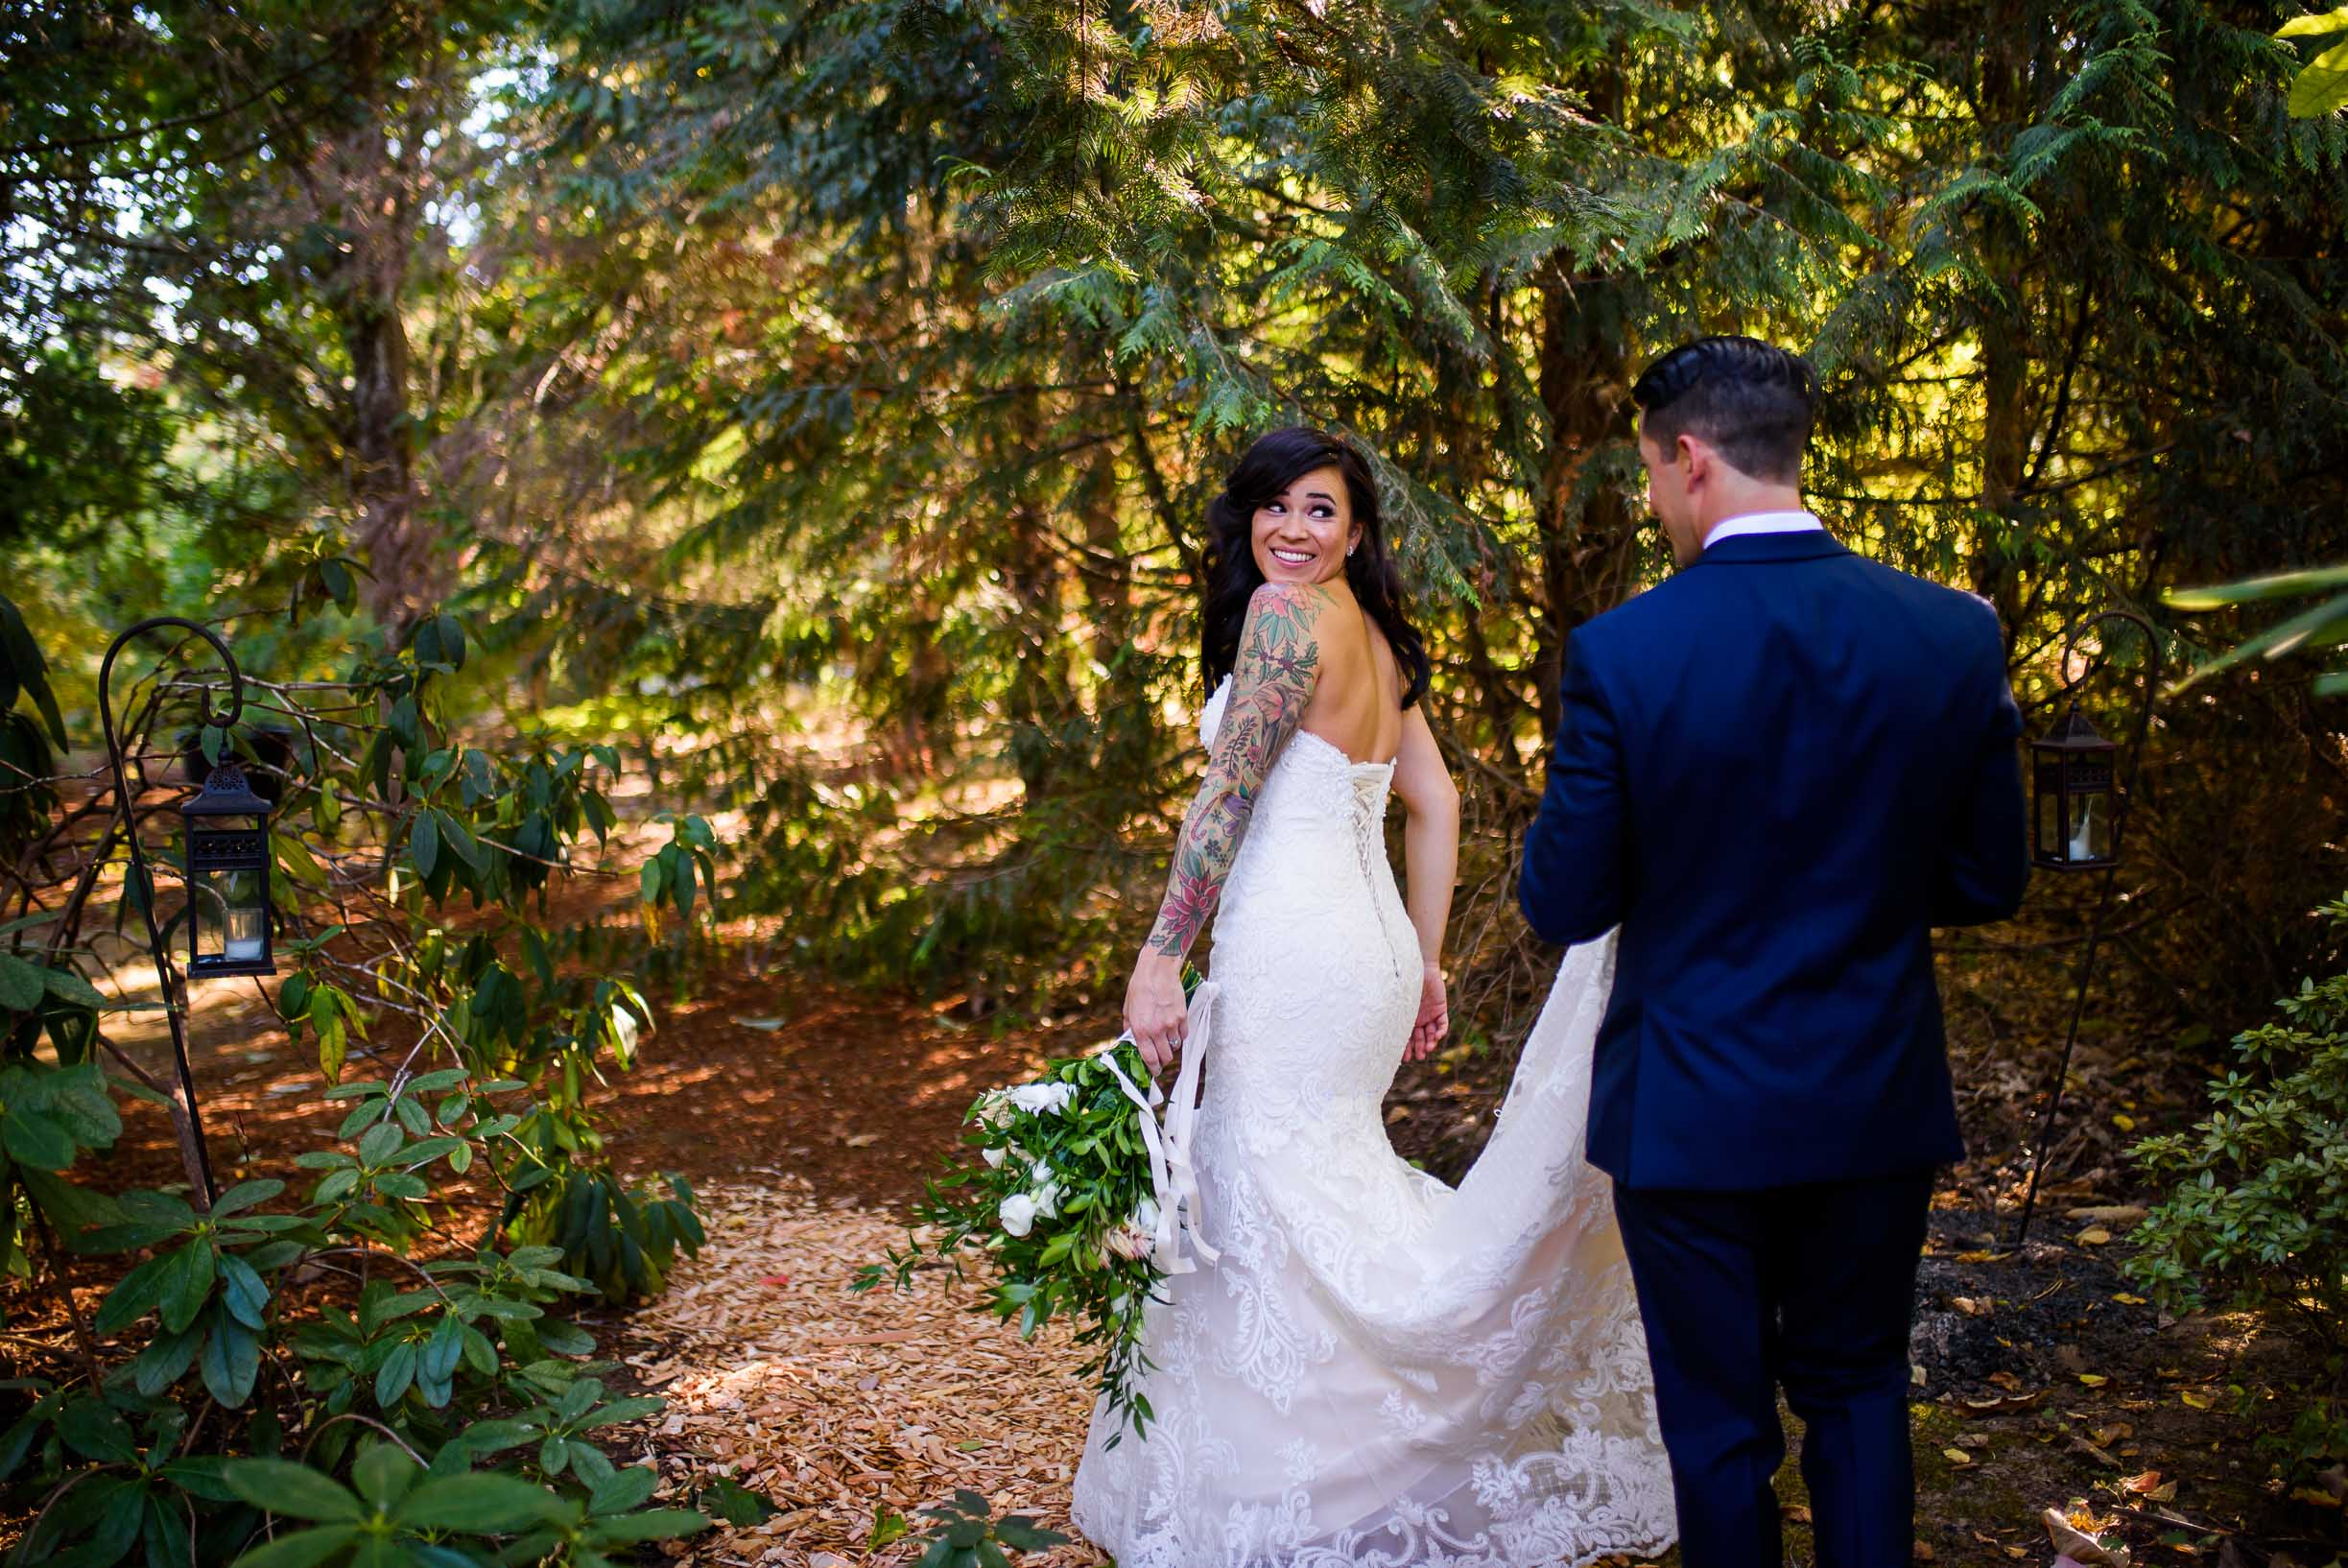 PORTLAND INTAMATE BACKYARD WEDDING 33.jpg